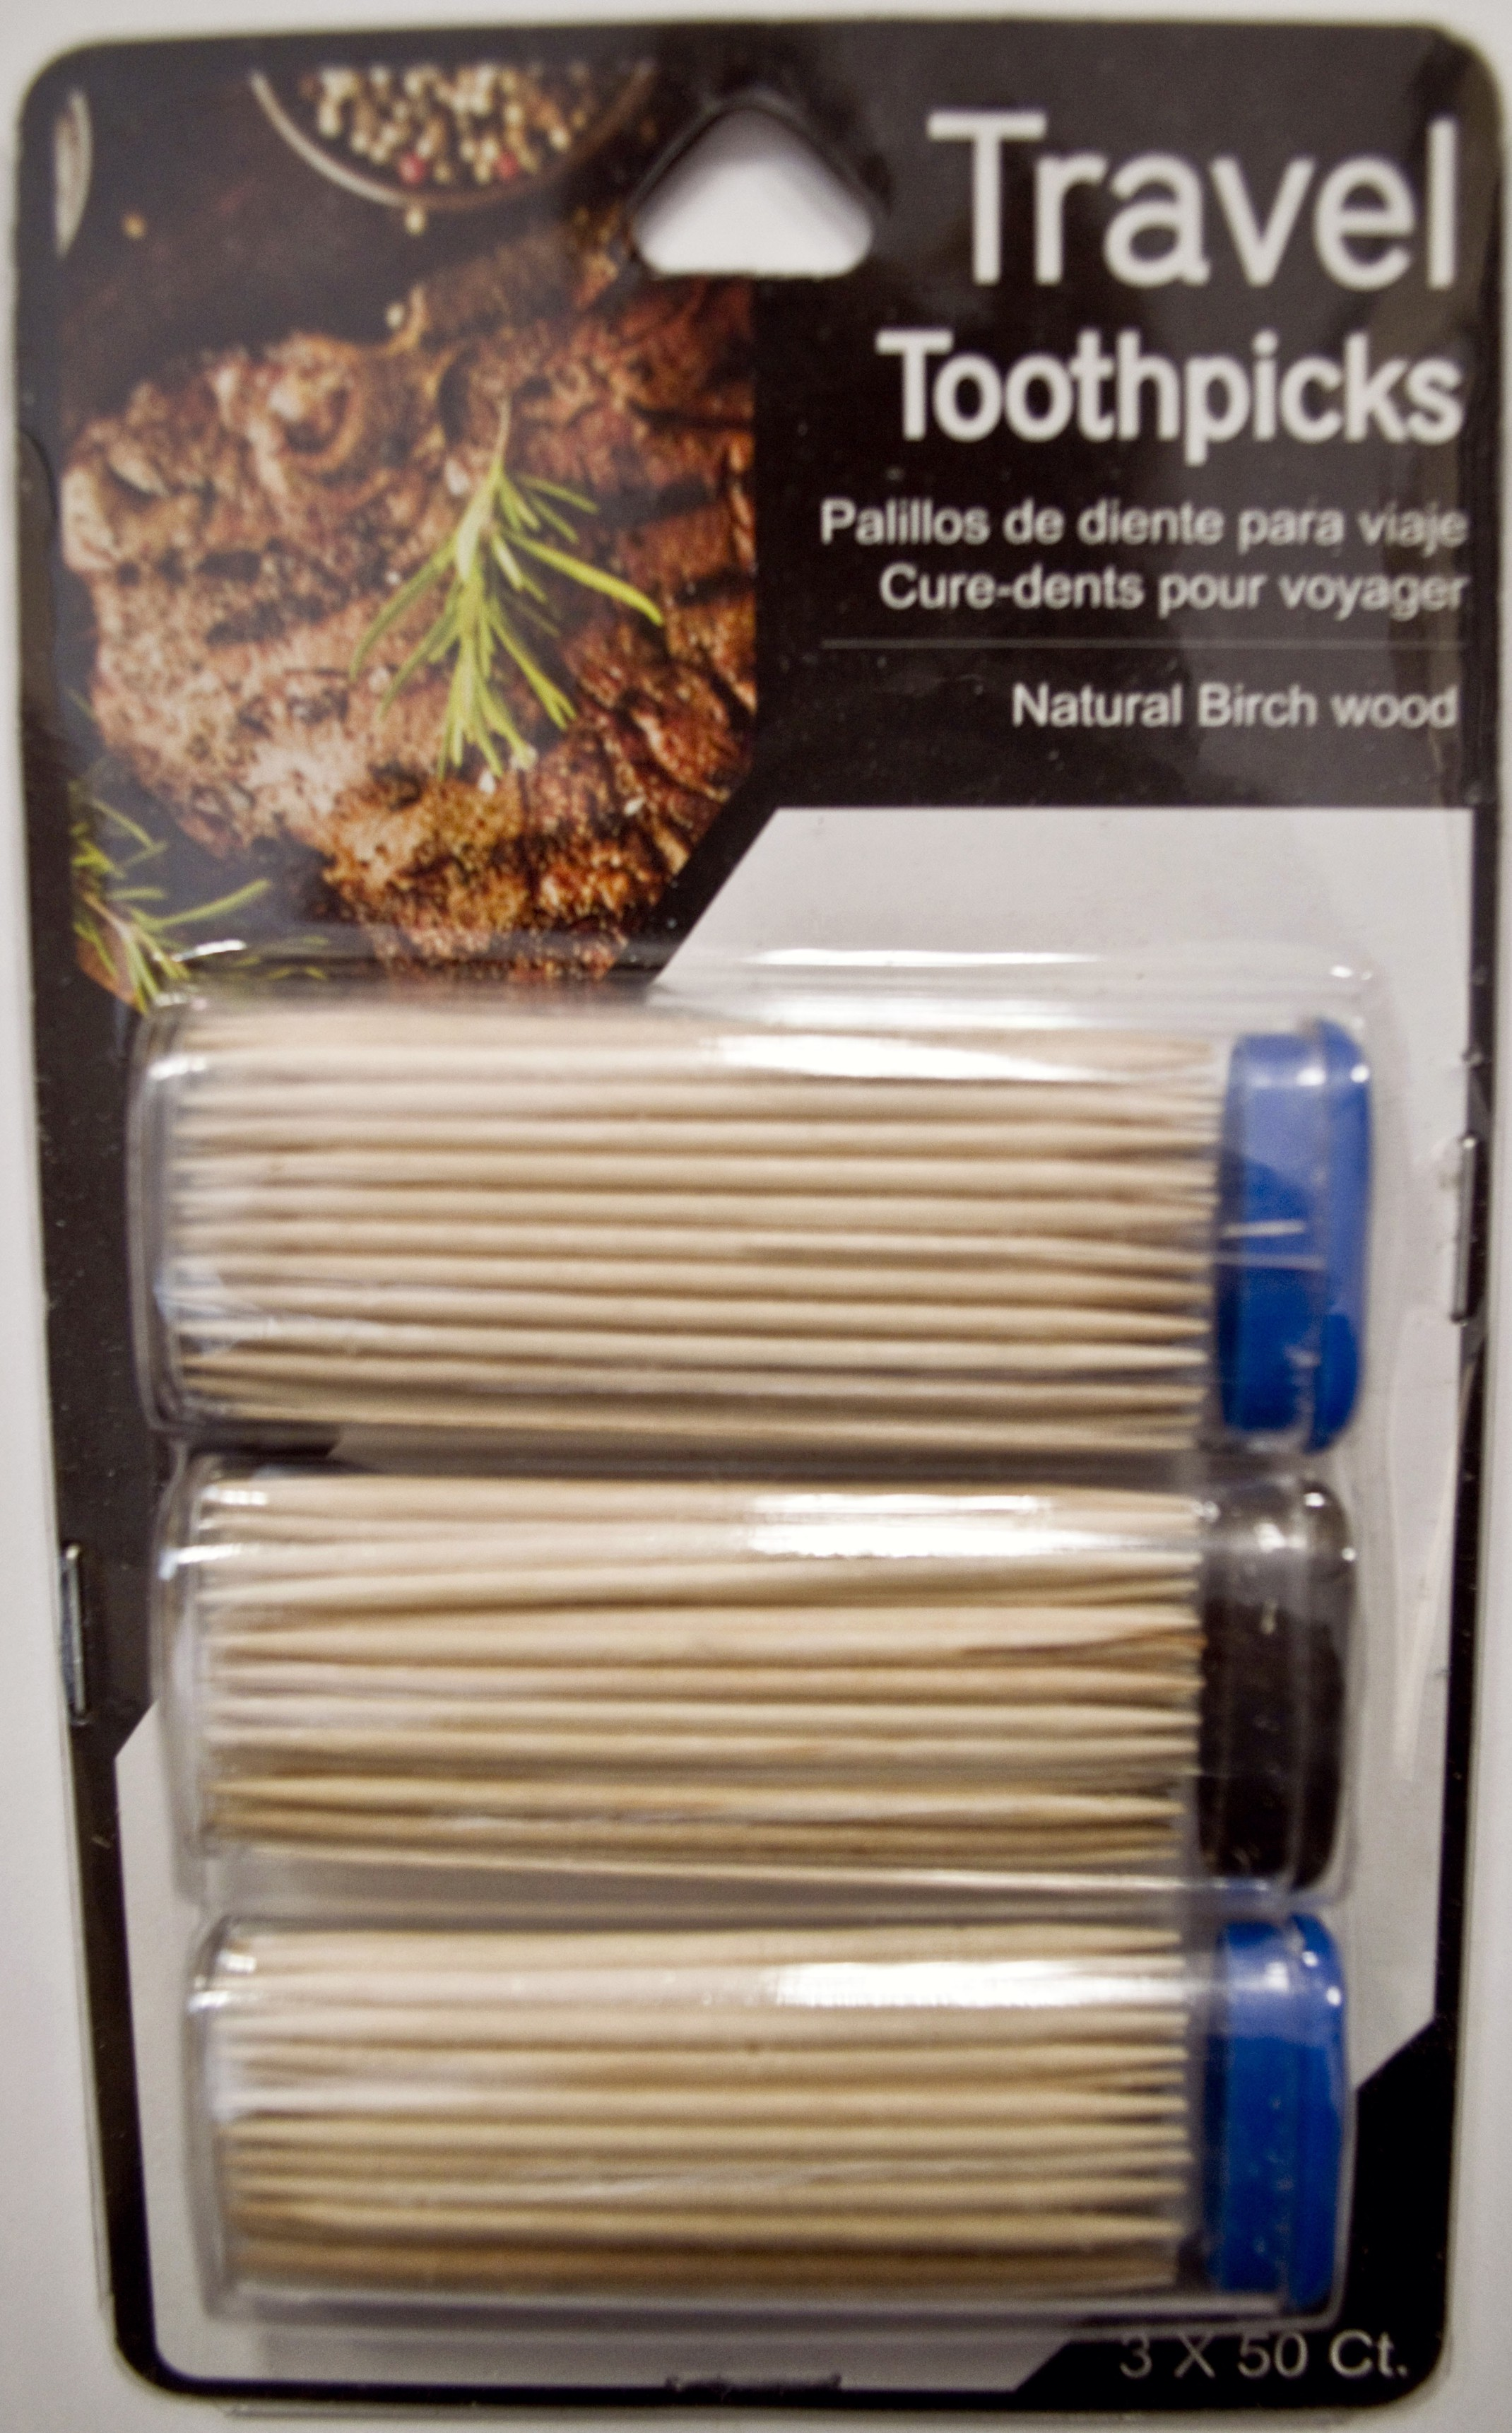 Travel Toothpicks (3 packs of 50)